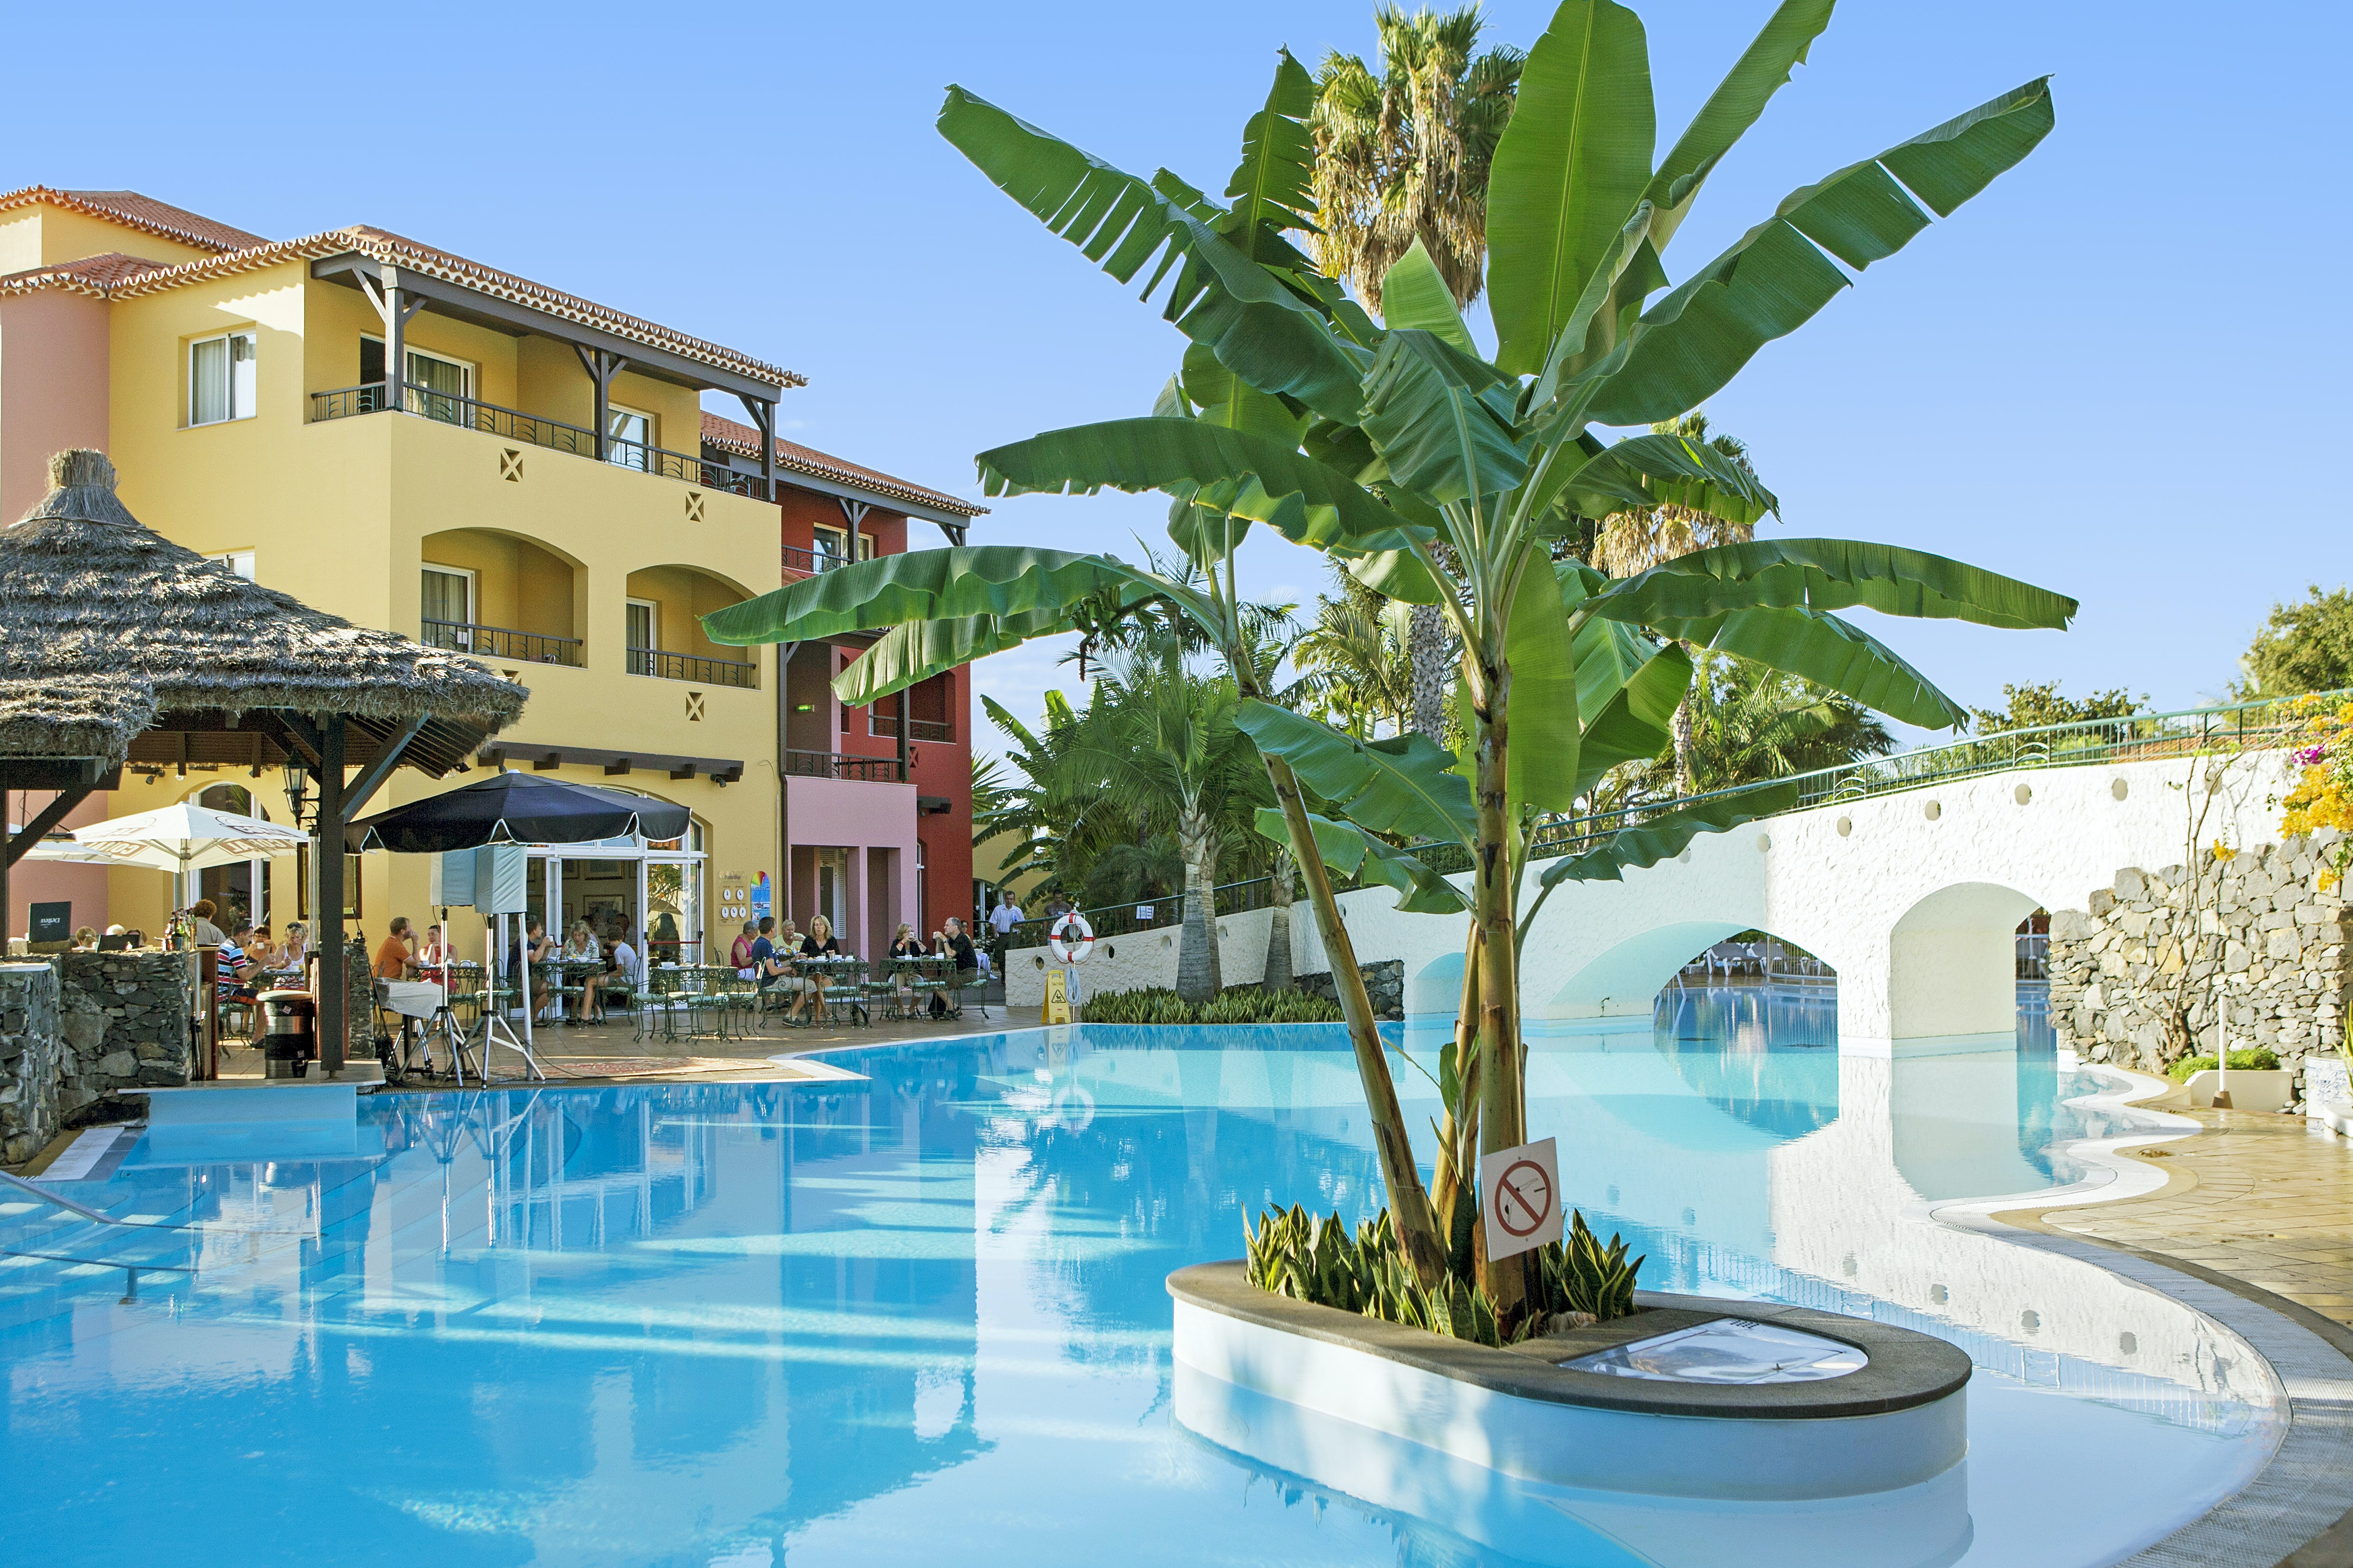 Blue Star Pestana Miramar & Village